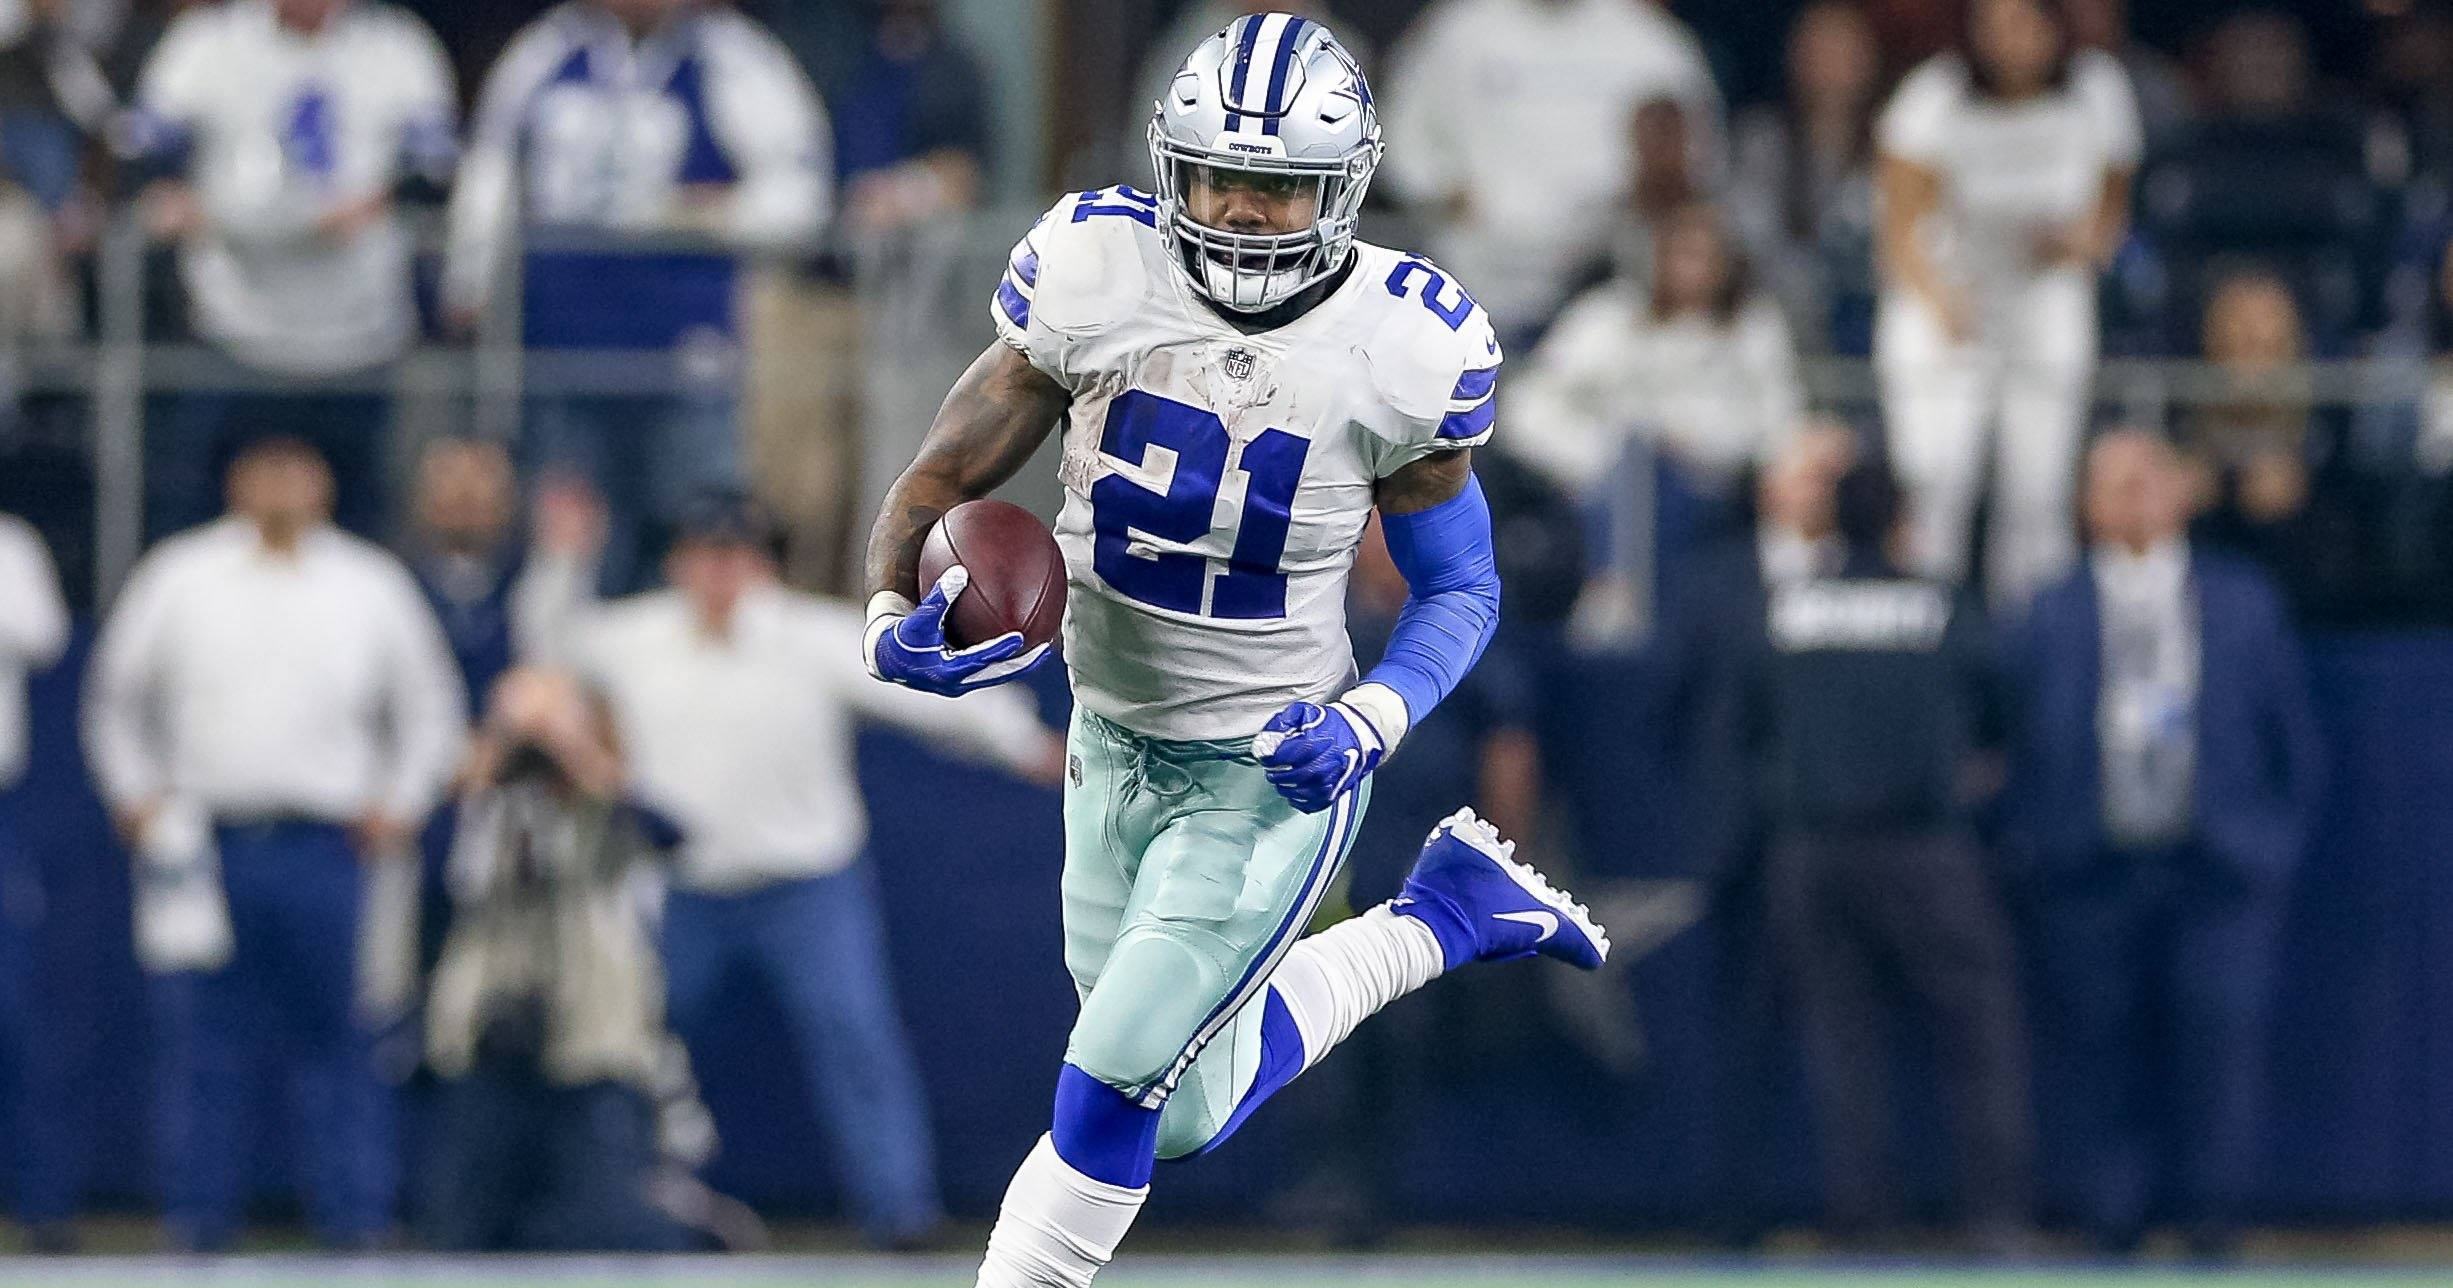 Ezekiel Elliott's Holdout is Different from Emmitt Smith in 1993